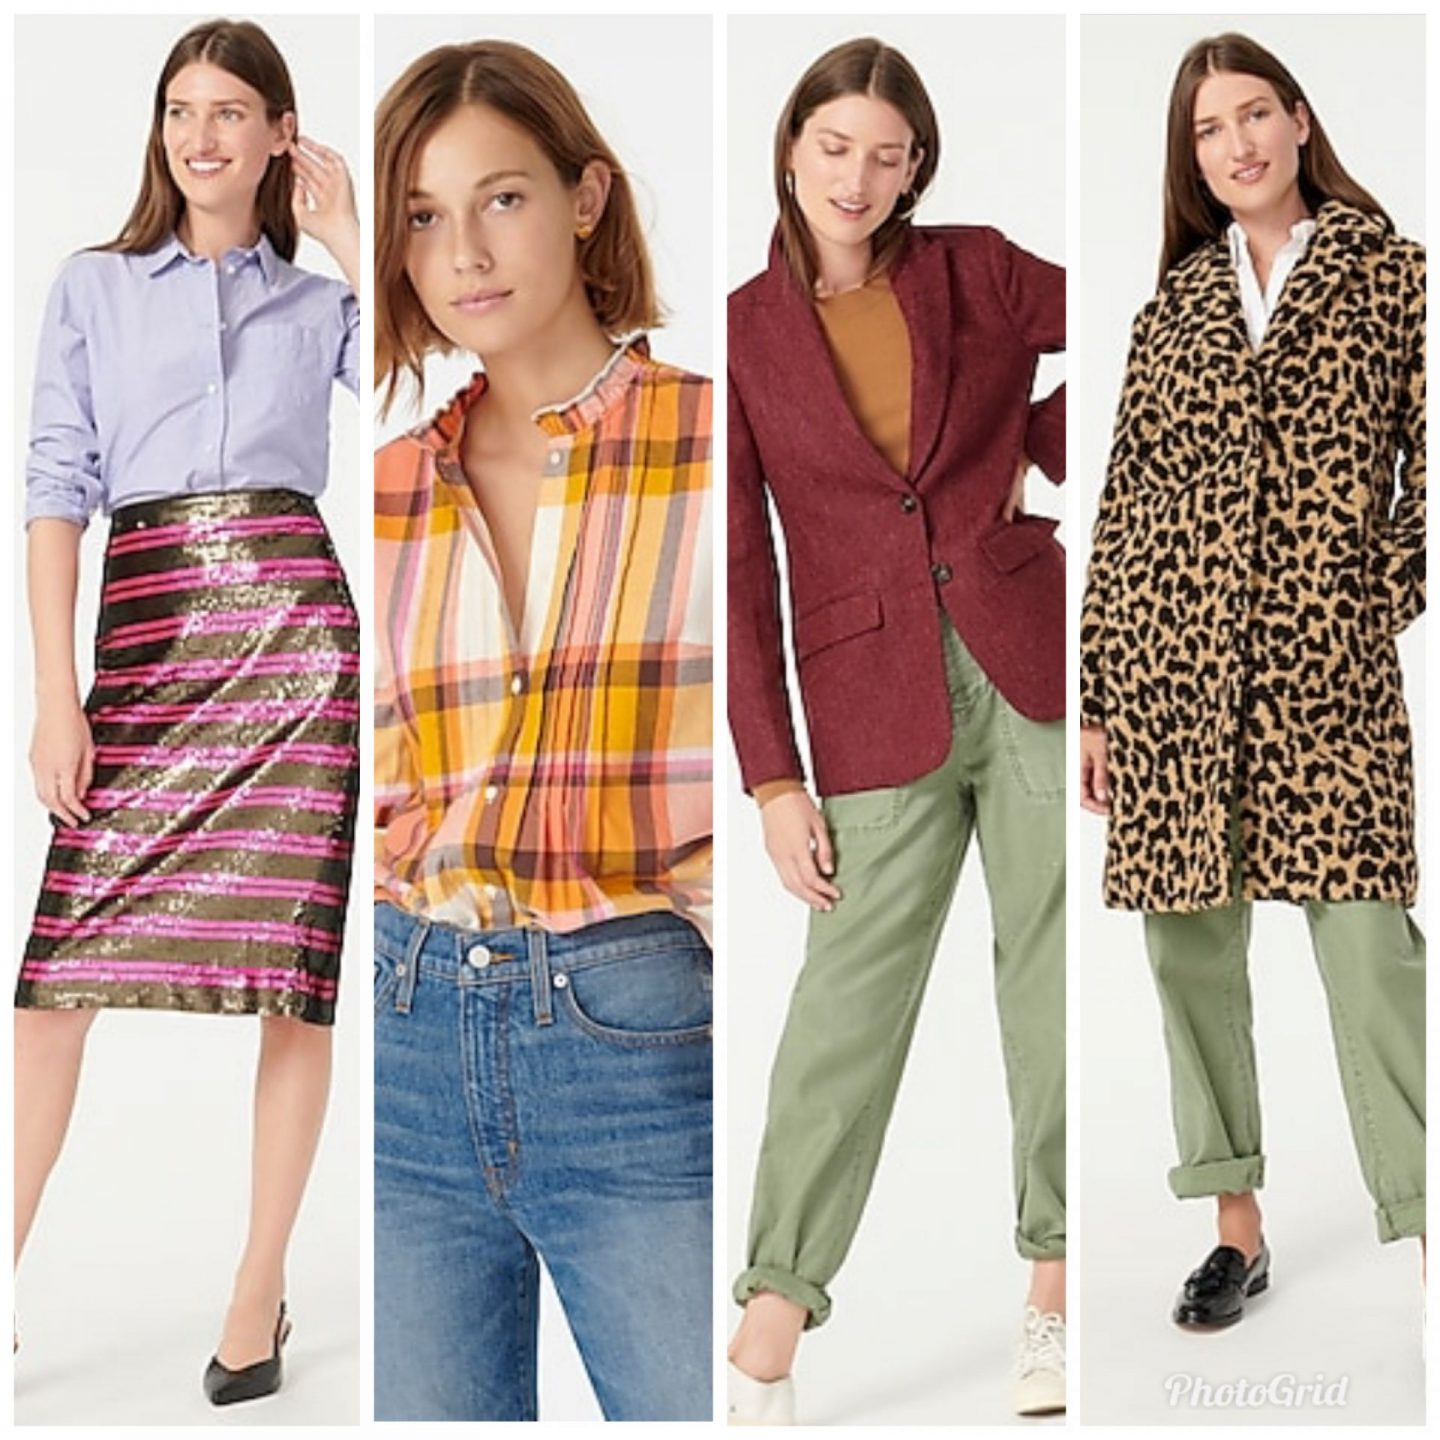 New Arrivals by popular Kentucky fashion blog, Really Rynetta: collage image of a J. Crew sequin skit, J. Crew plaid button down shirt, J. Crew tweed blazer, and J. Crew leopard print overcoat.